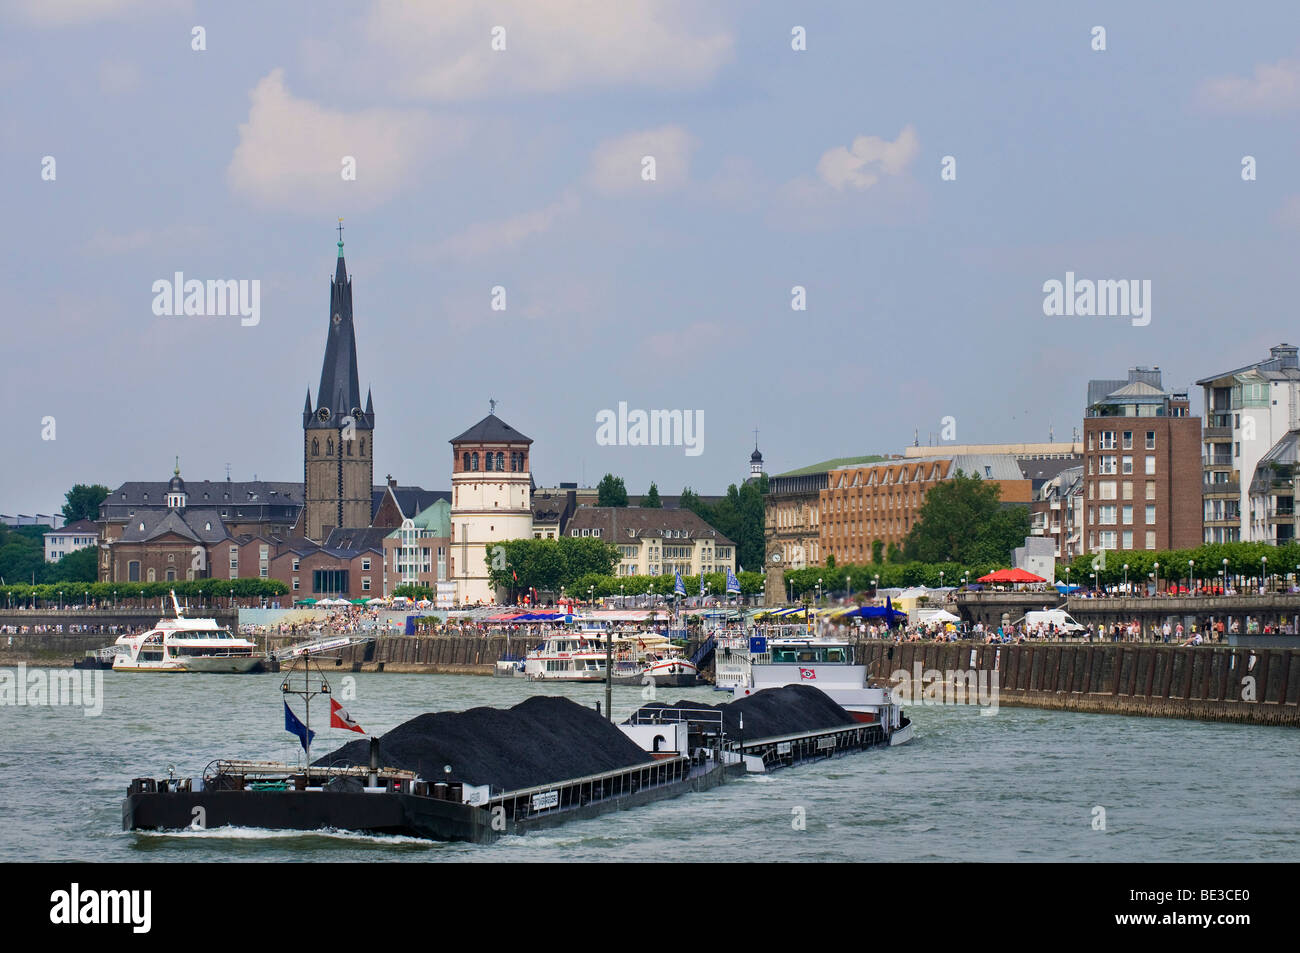 Panoramic view of Rhine River, Lambertuskirche Church, from Burgplatz Square to the old harbour, cargo ship on Rhine - Stock Image